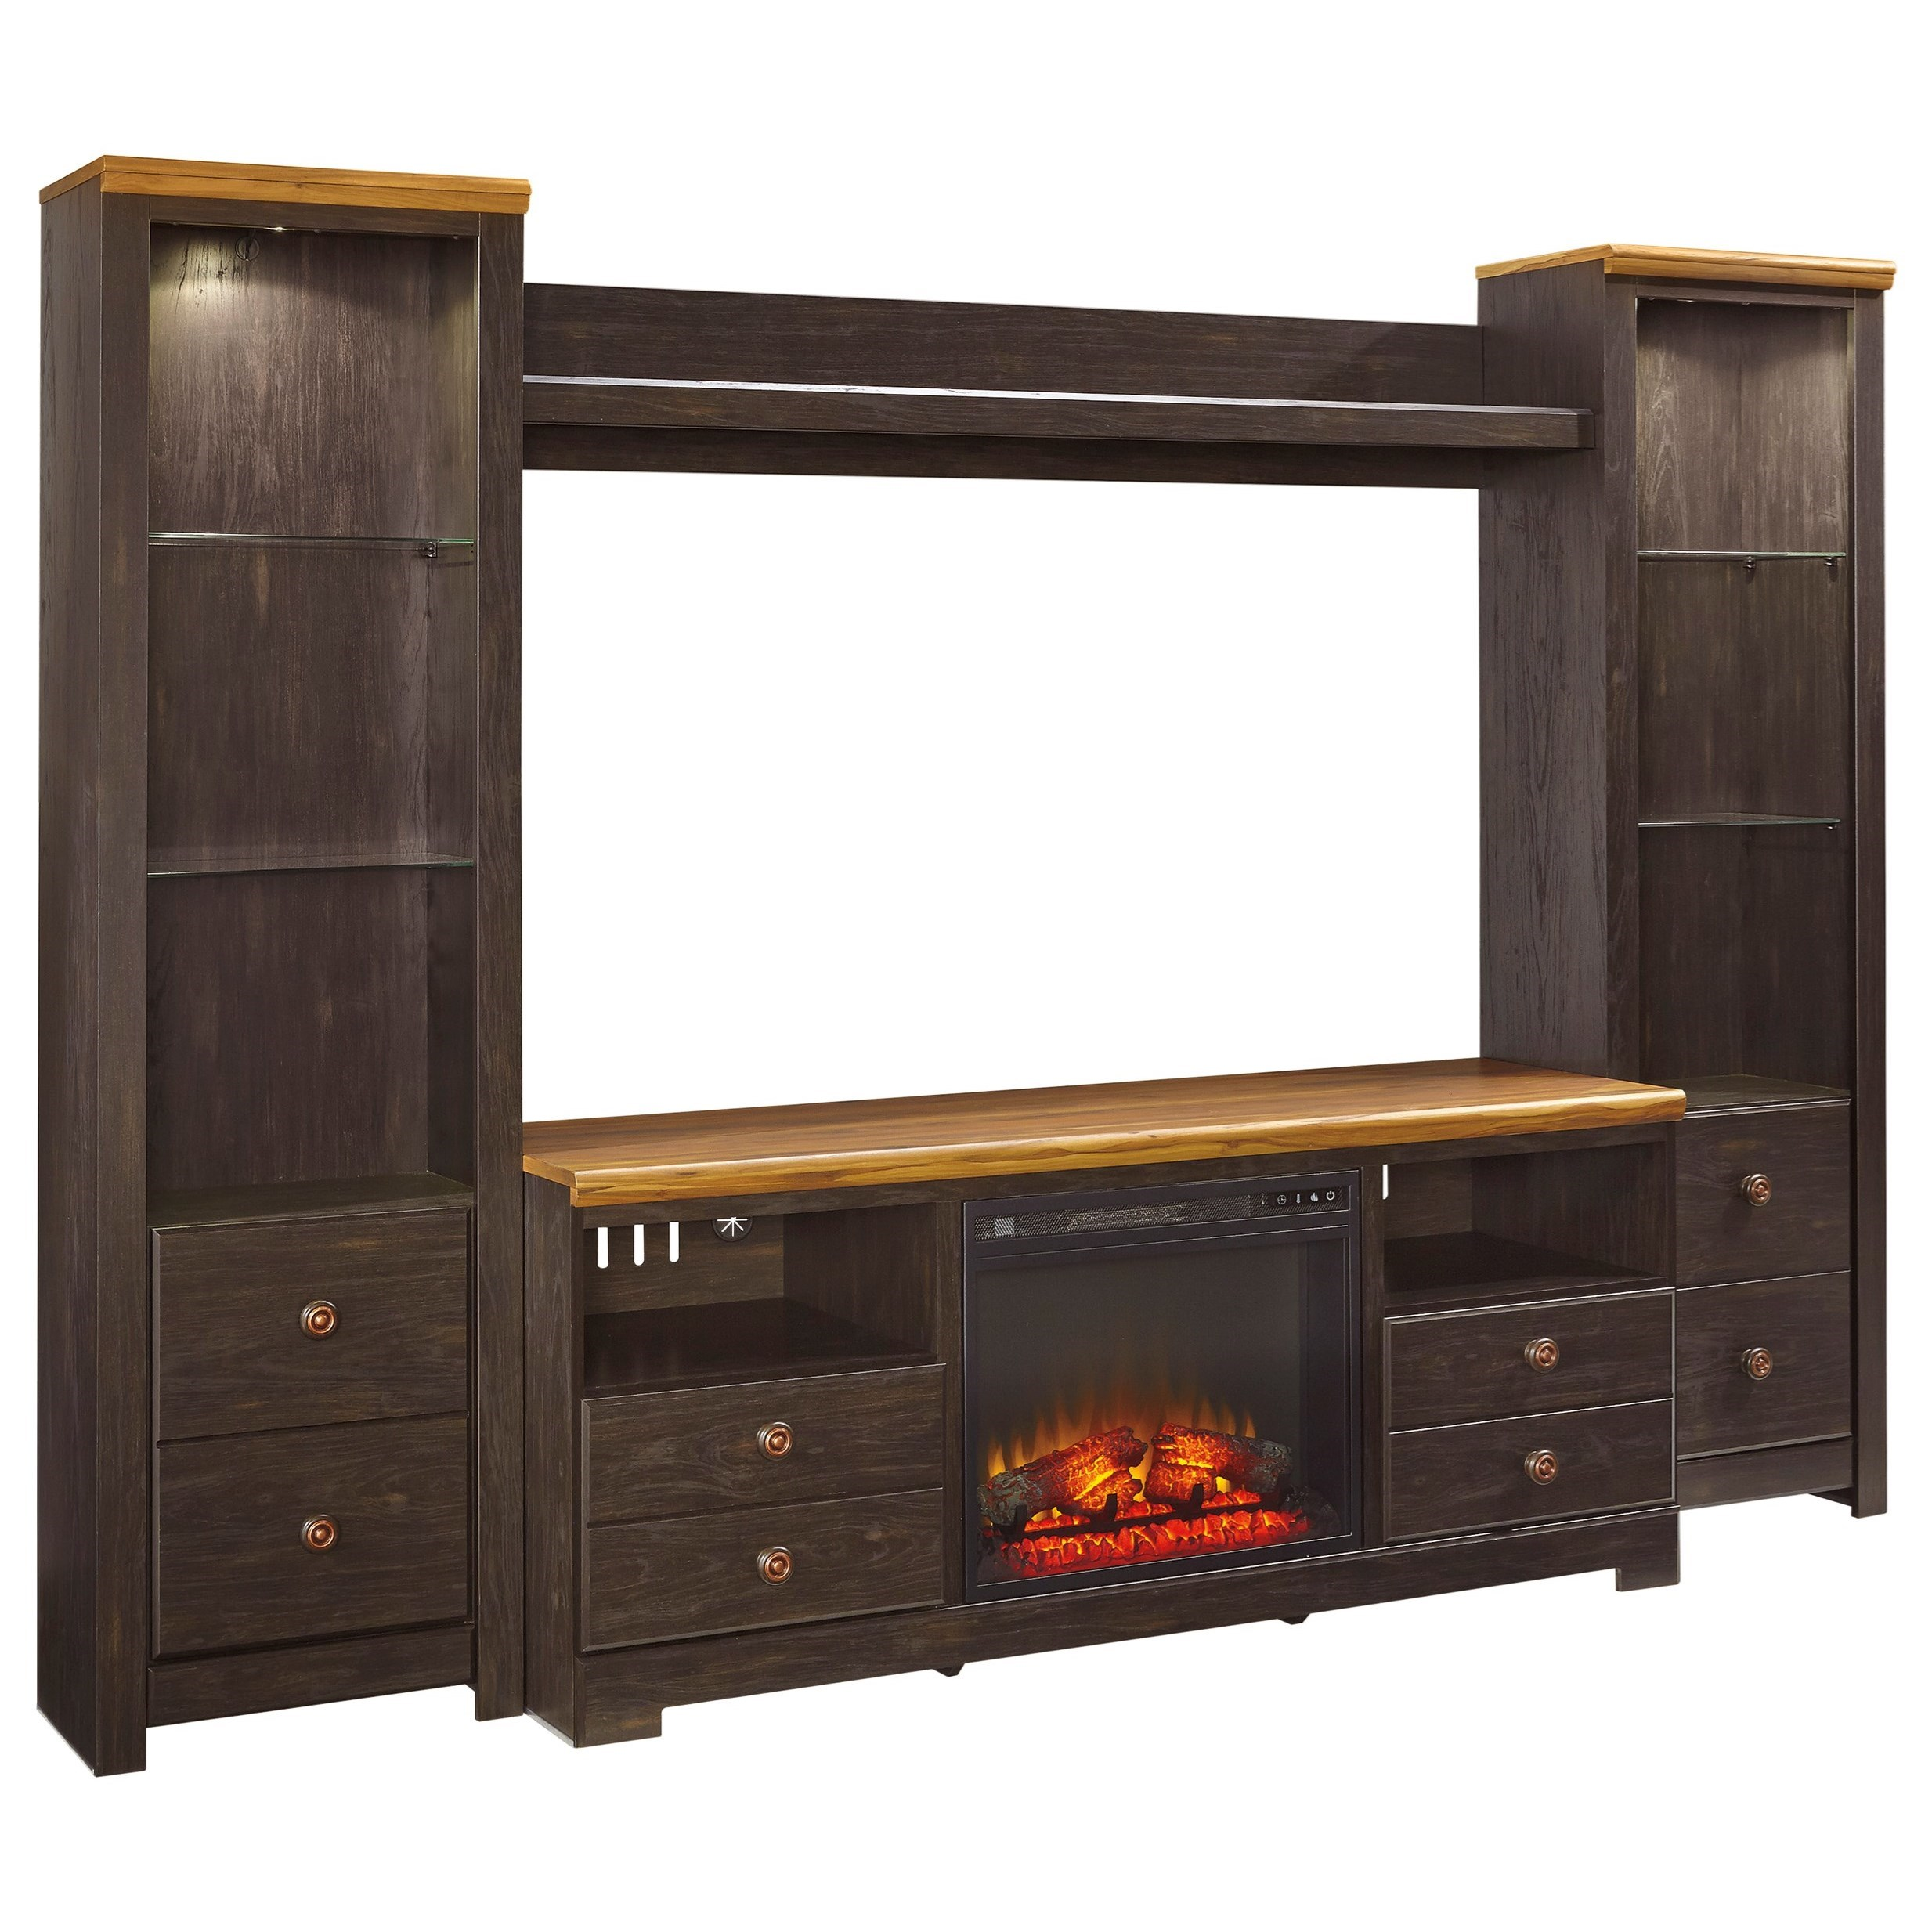 Signature Design by Ashley Maxington Large TV Stand w/ Fireplace, Piers & Bridge - Item Number: W220-68+W100-01+2xW220-24+27